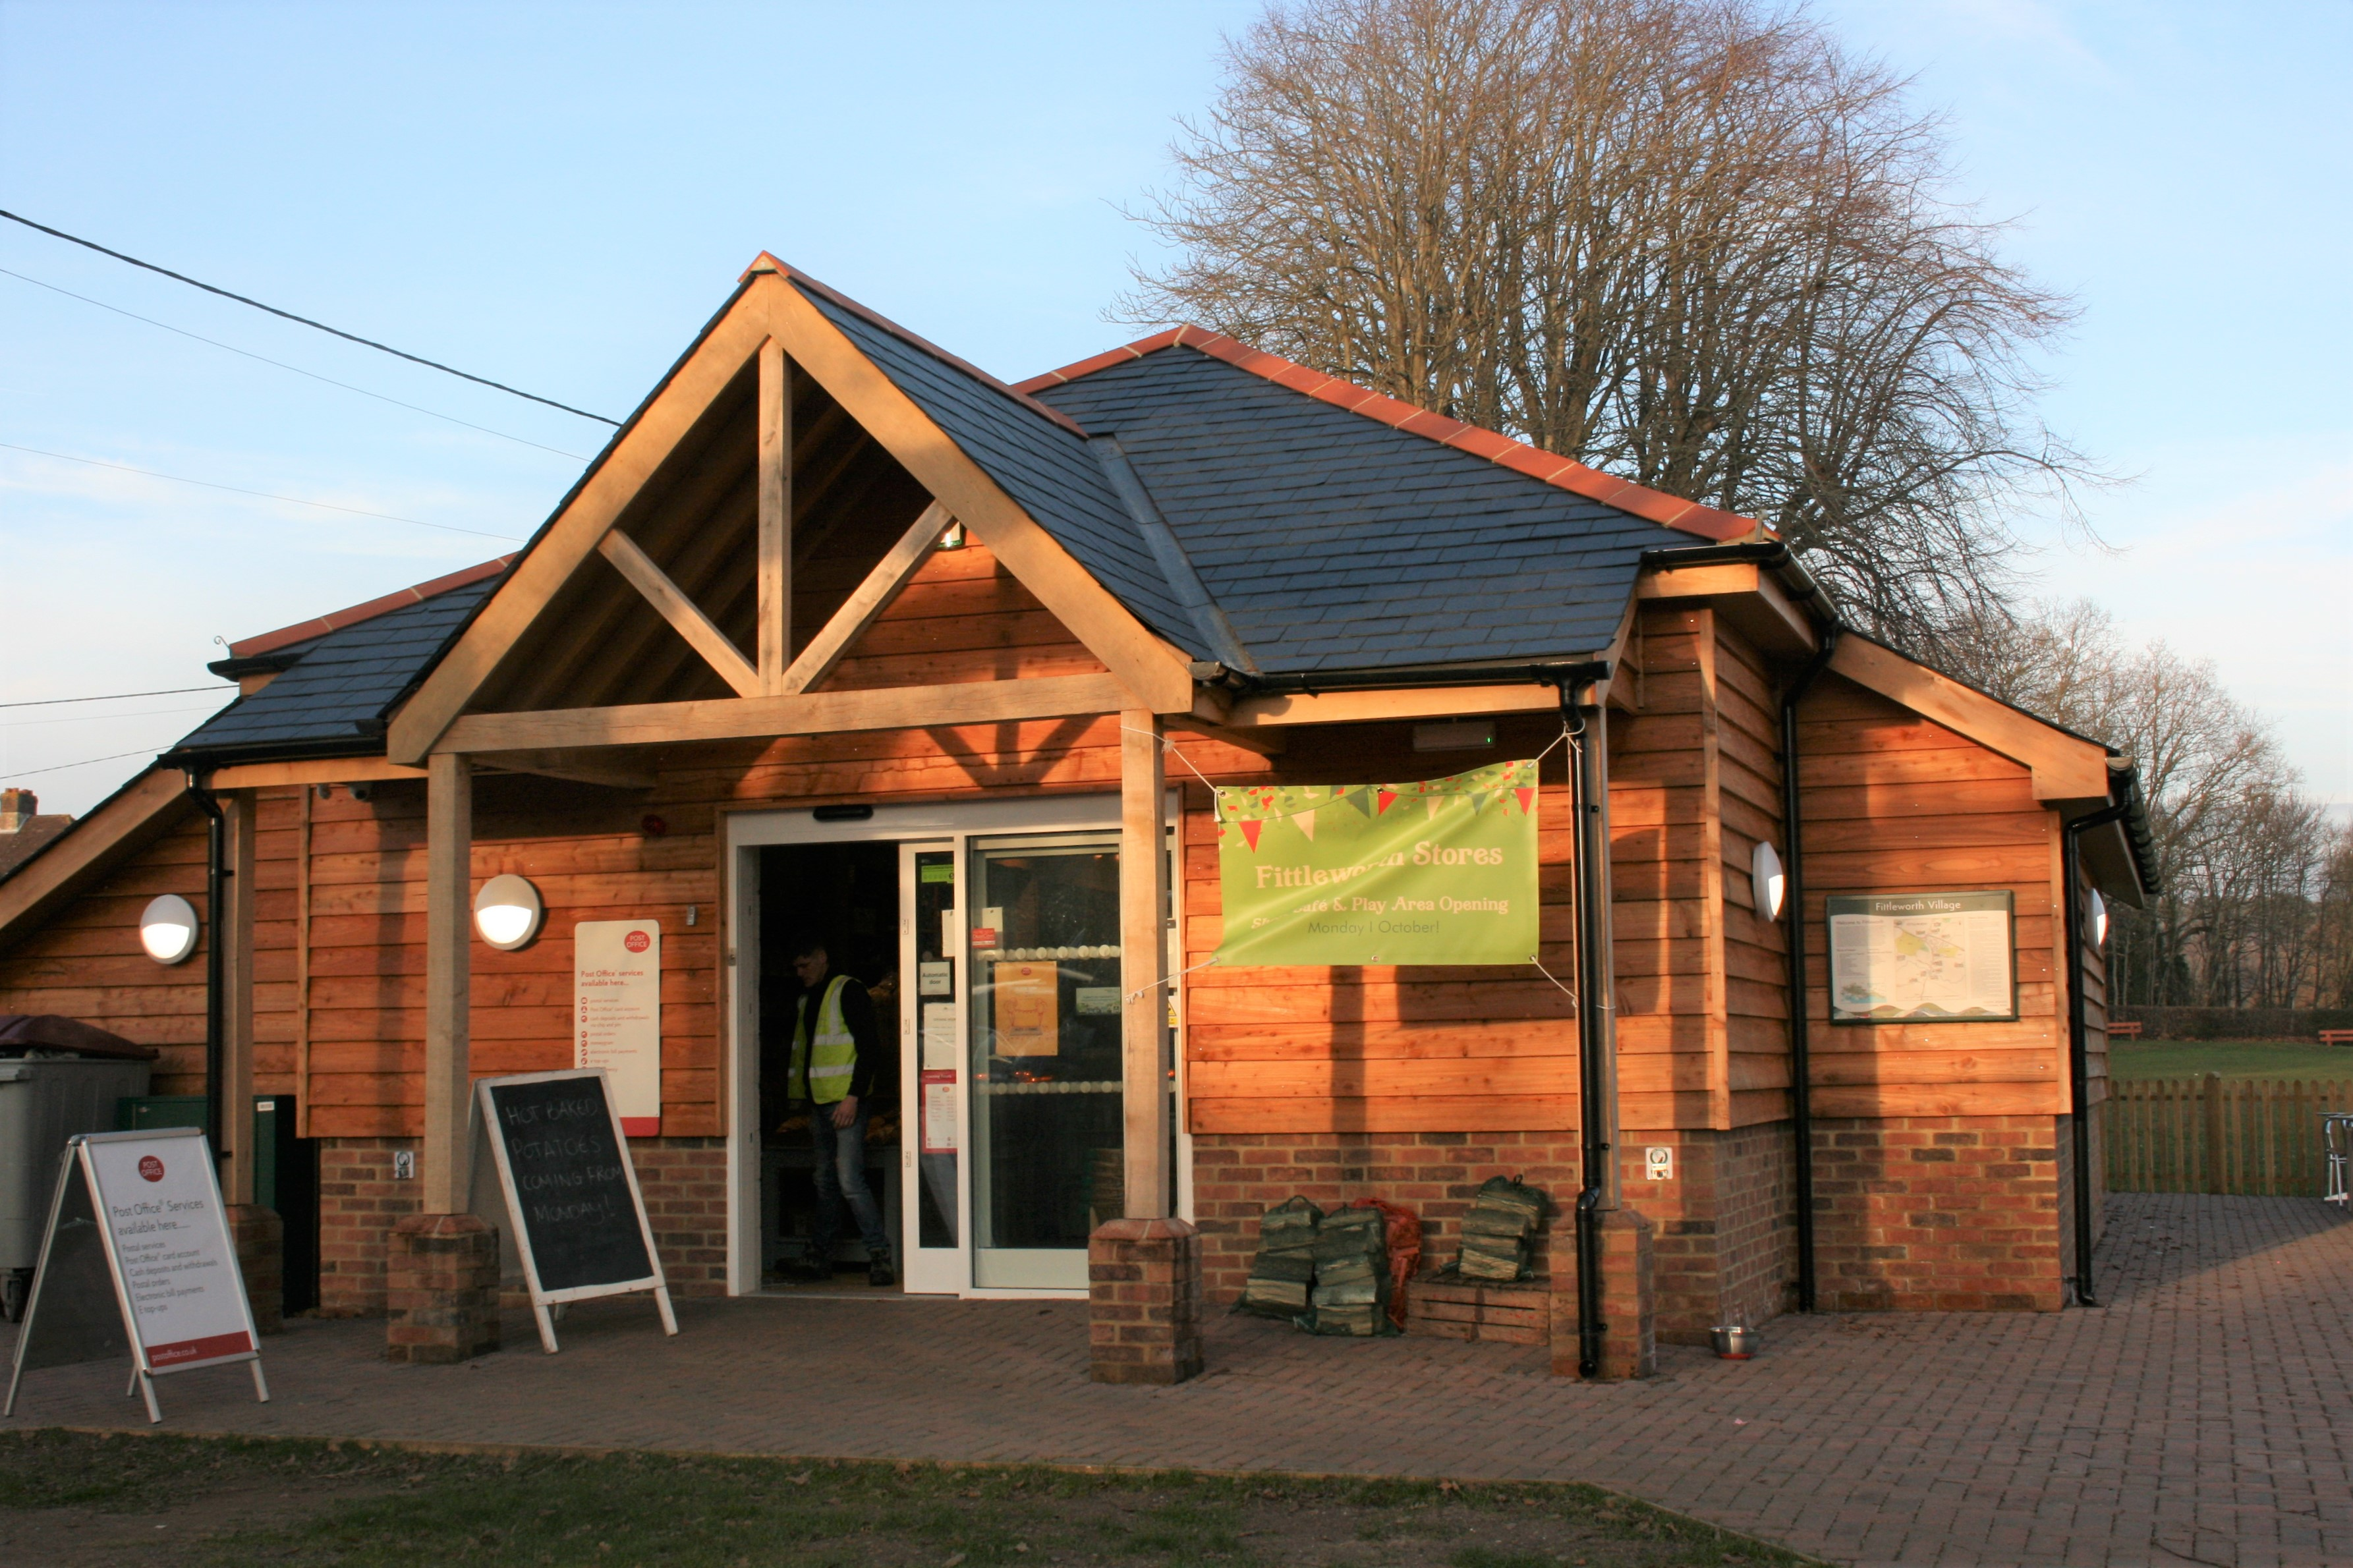 Well done to everyone who has helped Fittleworth Stores and Cafe become a Countryside Alliance S.E. Region Finalist!